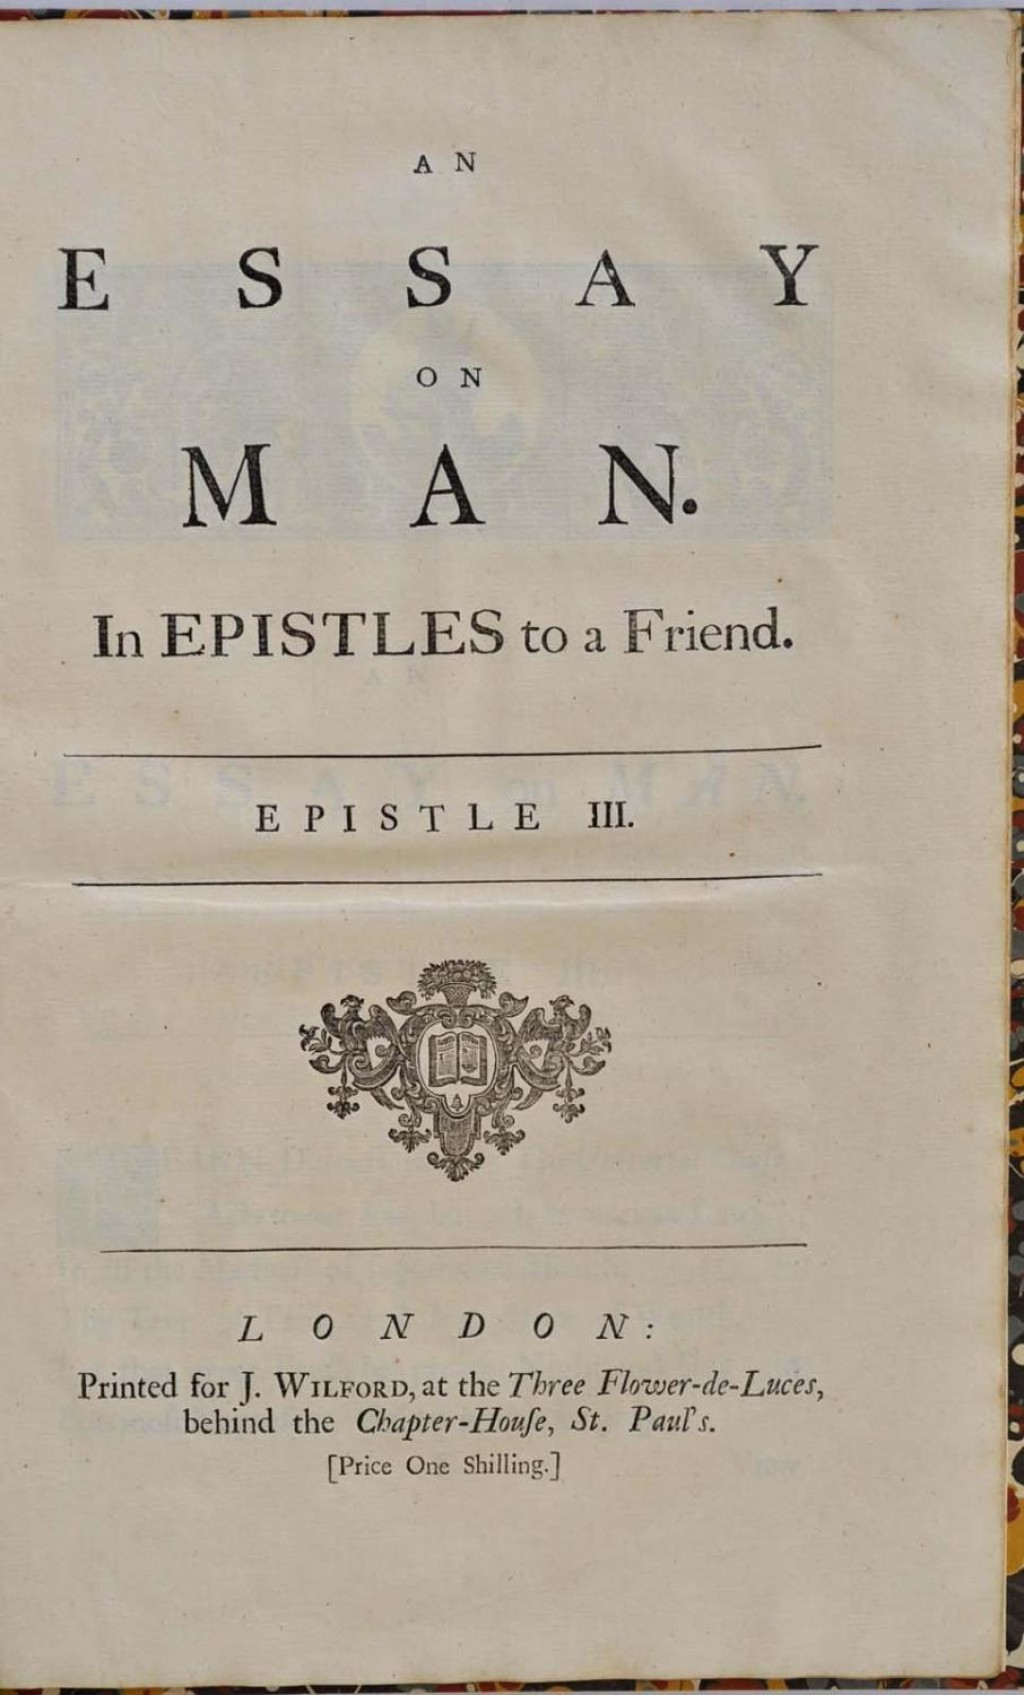 005 1357222764 4 Essay On Man Stirring By Alexander Pope Analysis Pdf Critical Manners Reveal Character Large